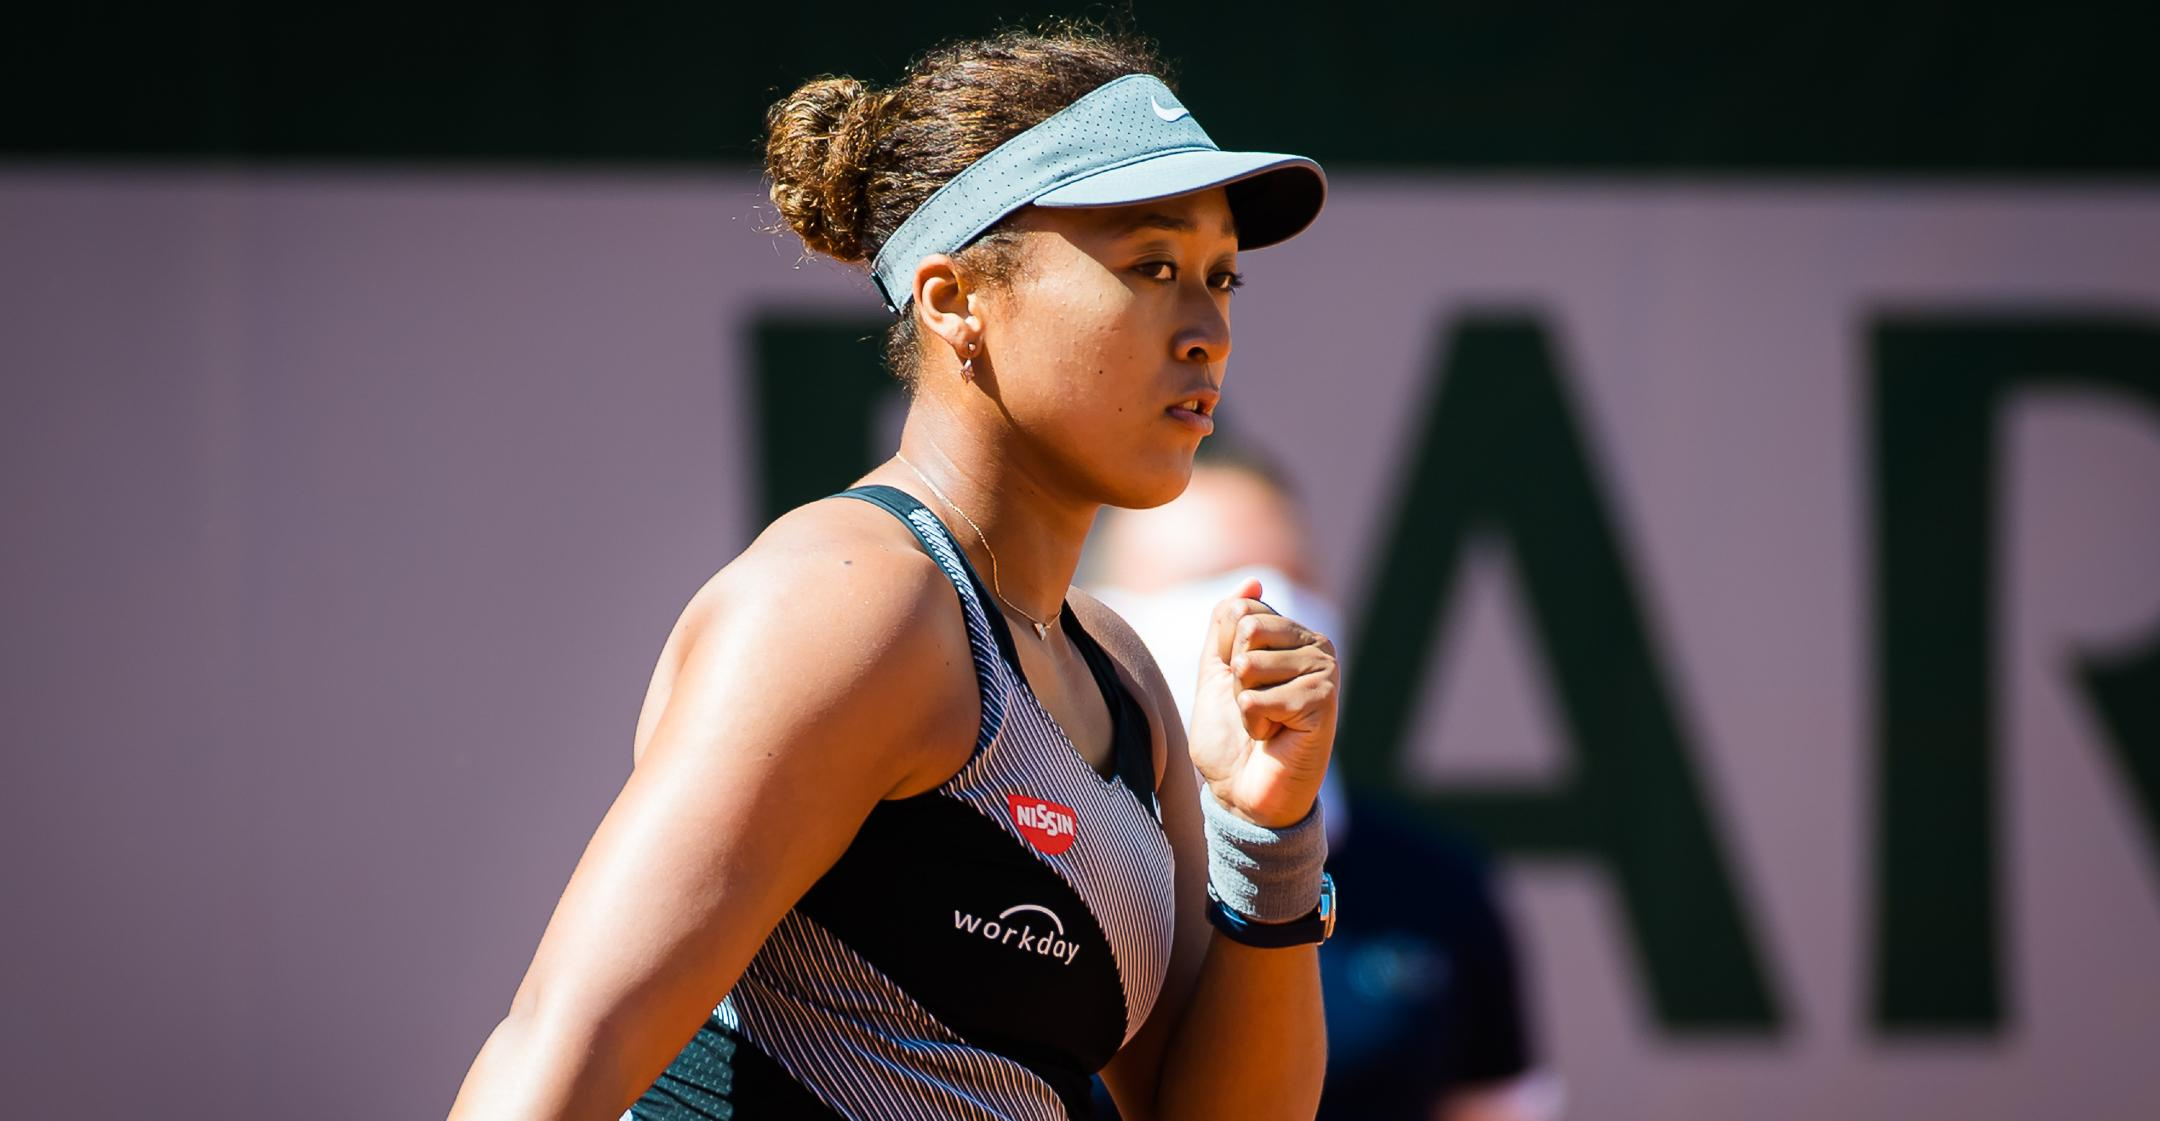 anxiety depression struggles caused naomi osaka to skip press withdrawn from french open